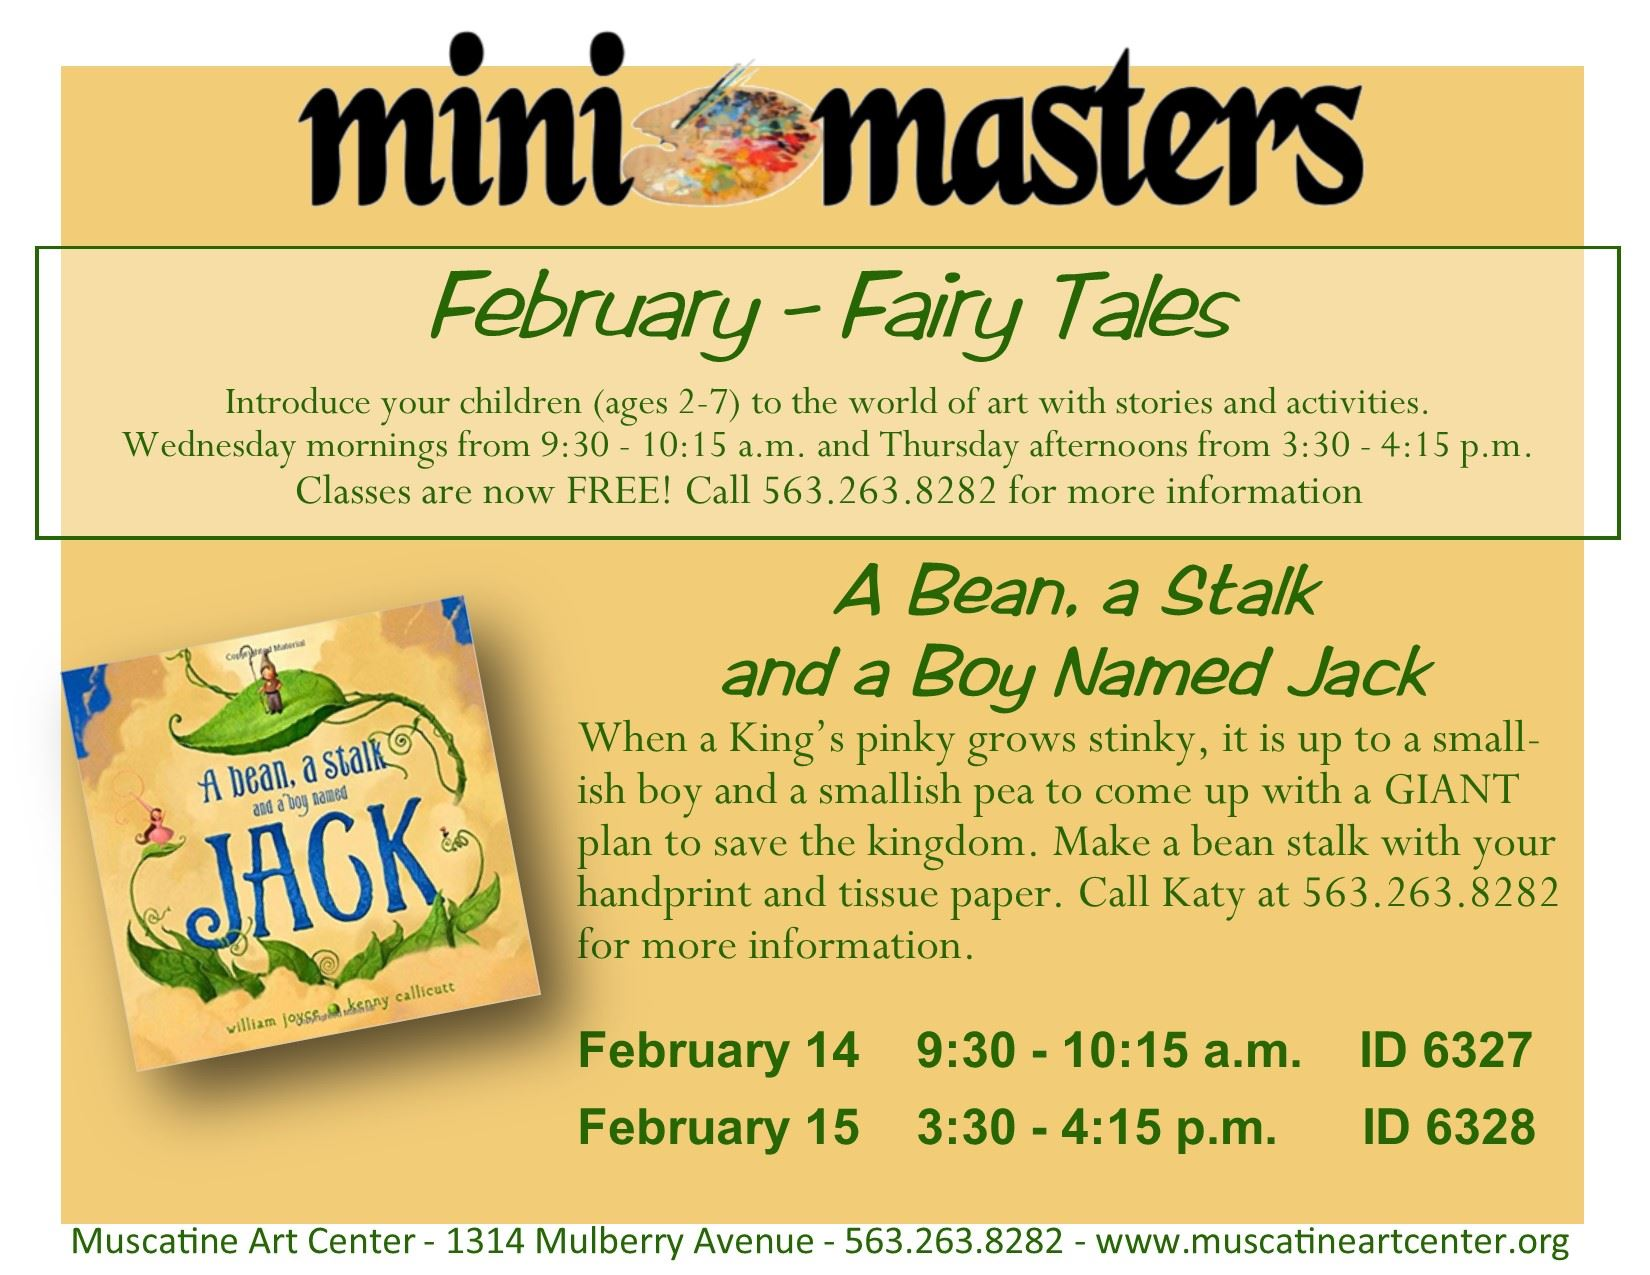 February 14-15 - Mini Masters -A Bean, A Stalk and a Boy Named Jack